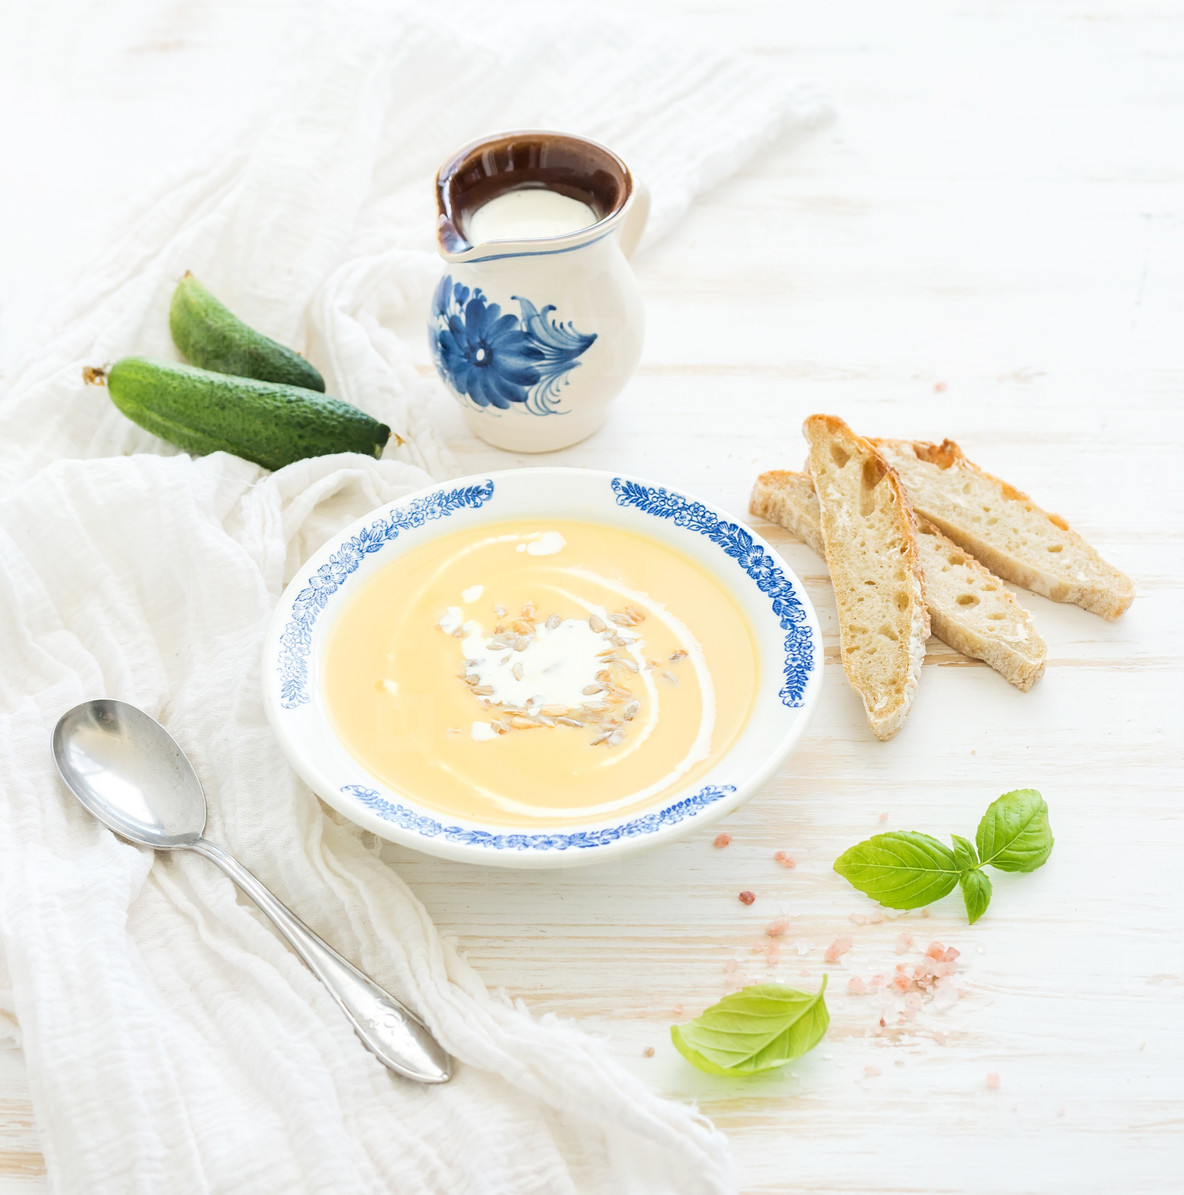 Pumpkin soup with cream  fresh basil  cucumbers and bread in vintage ceramic plate over white wooden background